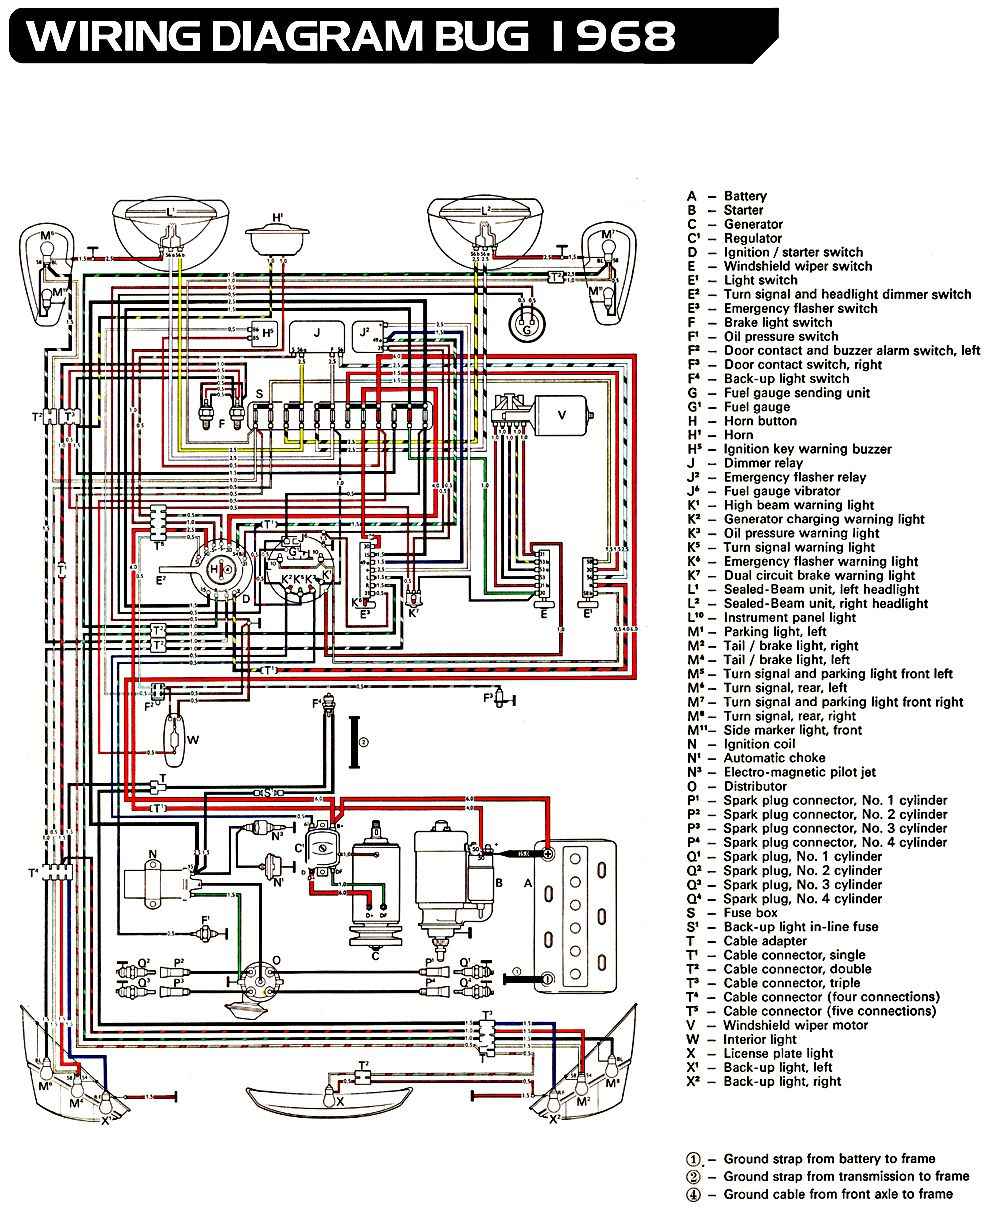 hight resolution of 1969 vw bug fuse diagram wiring diagram for you1969 vw wiring diagram wiring diagram yes 1969